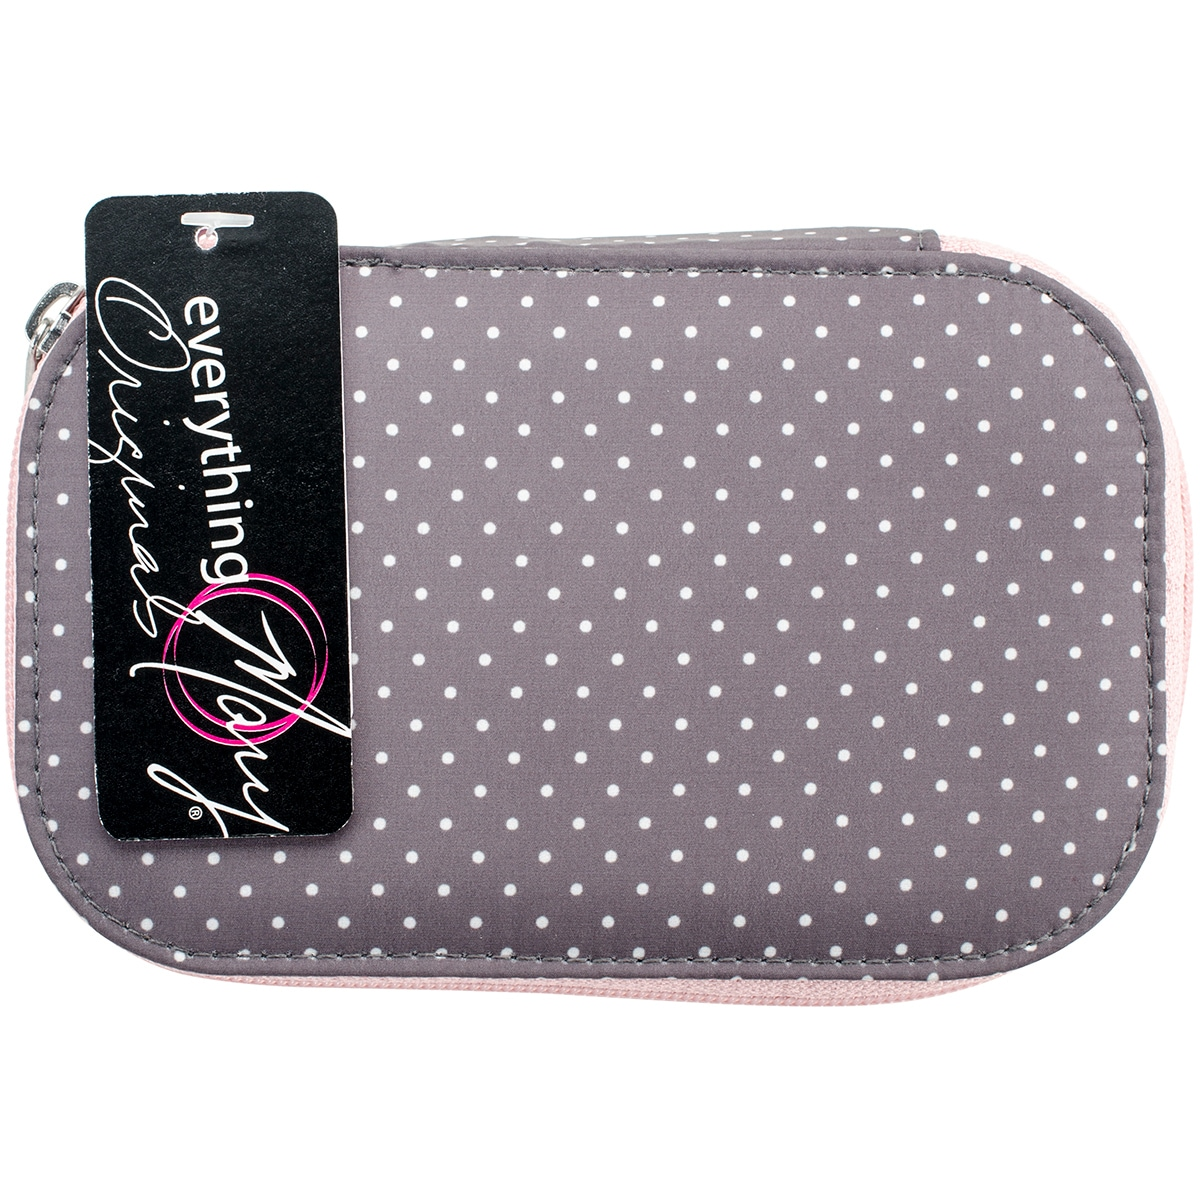 Everything Mary Zip Around Sewing Kit Pink/Grey (Sewing K...